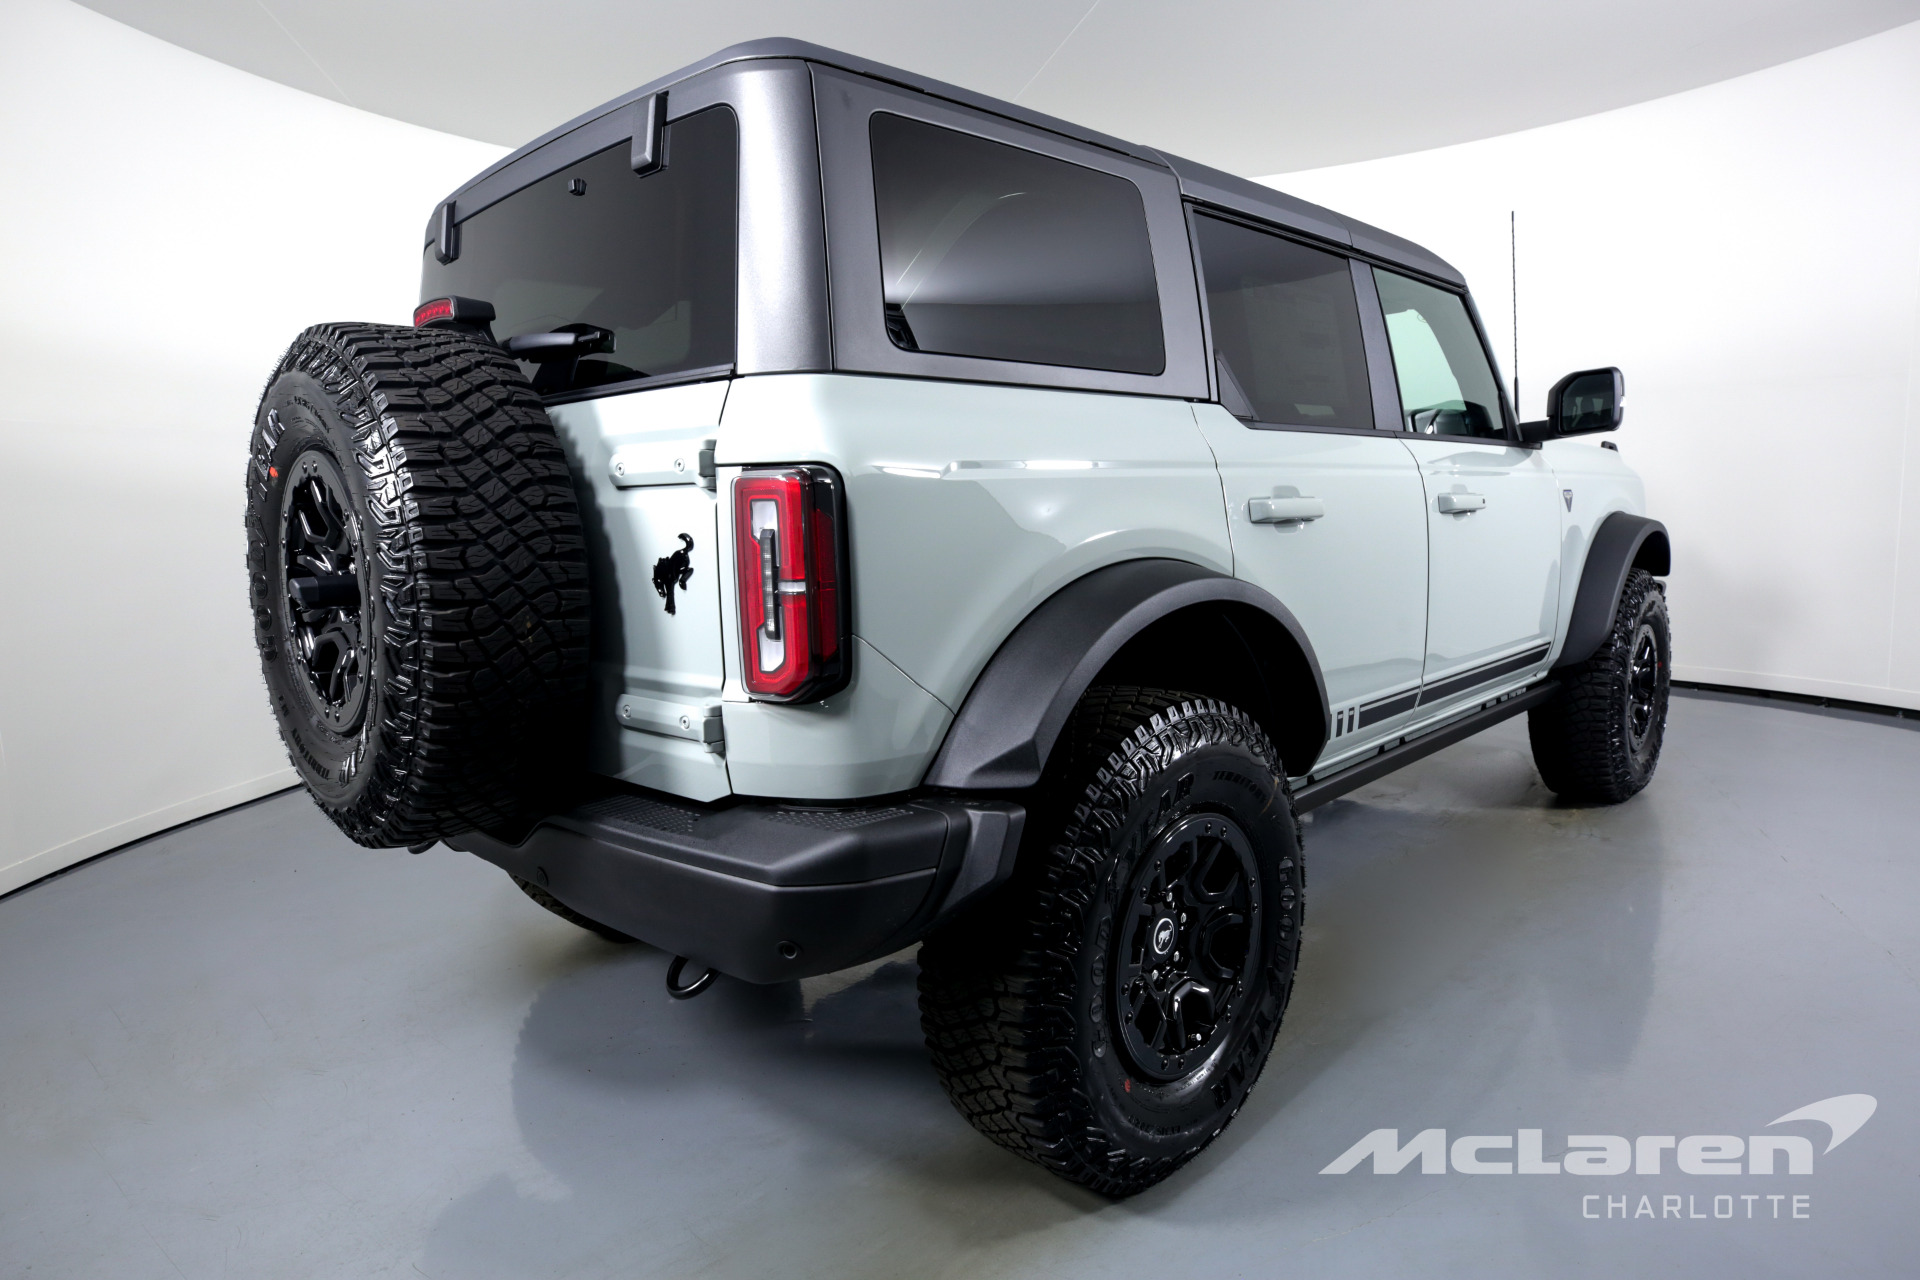 Used 2021 Ford Bronco First Edition Advanced   Charlotte, NC